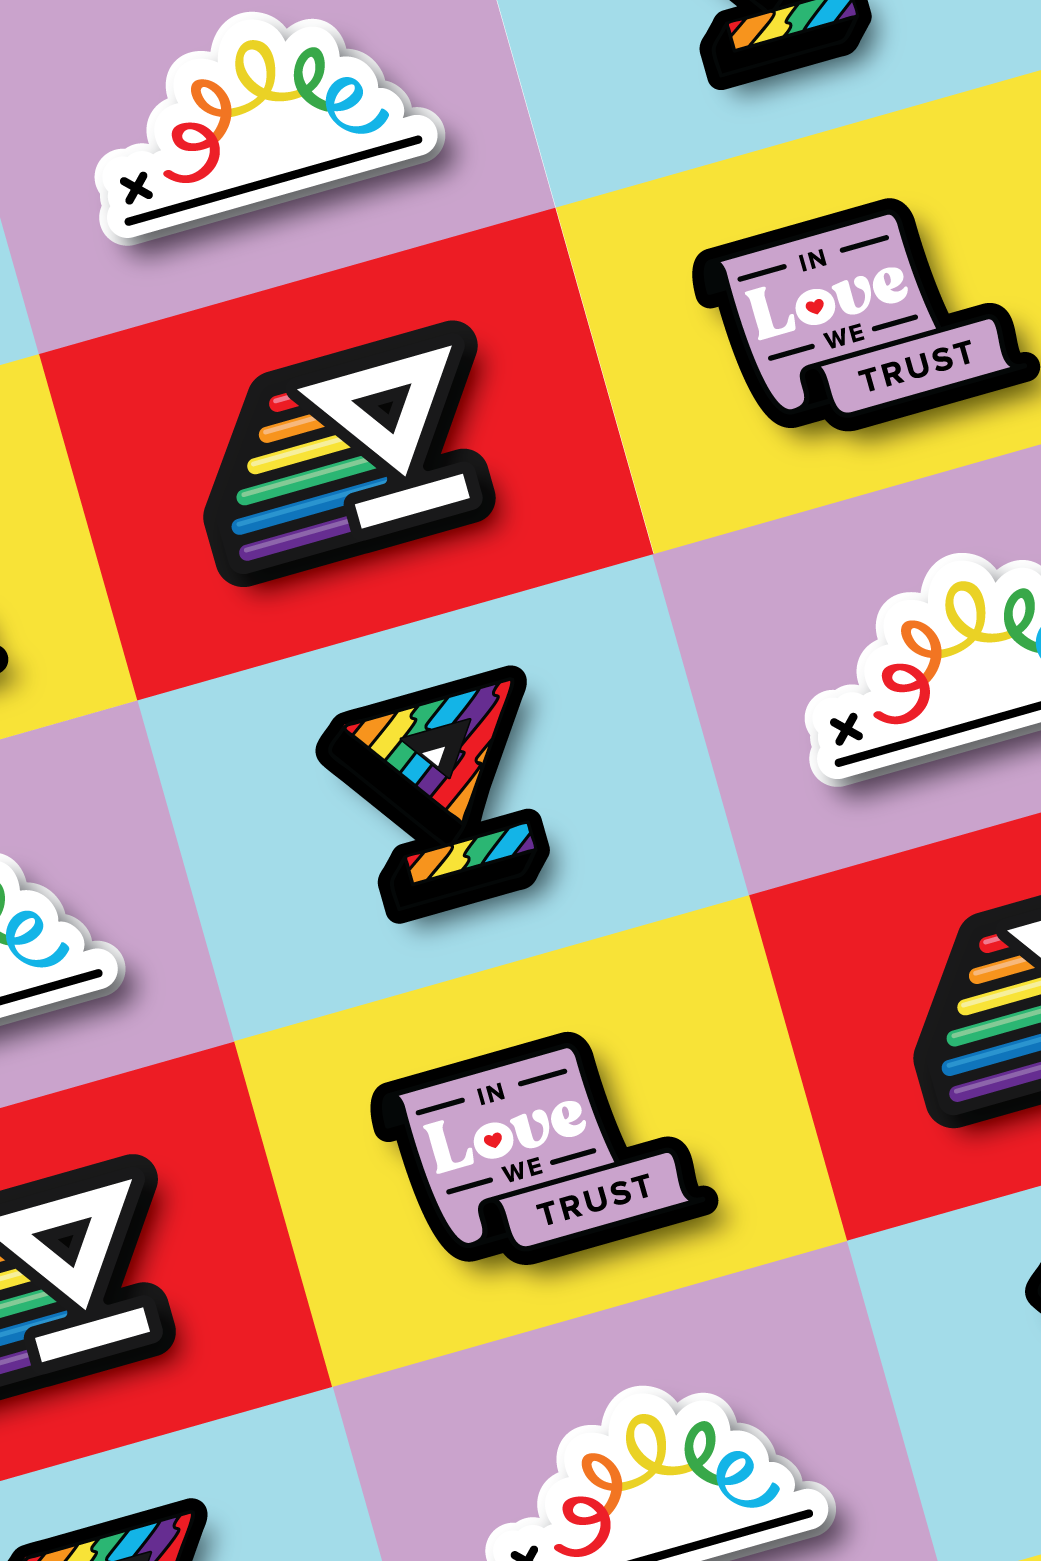 Pride stickers by Berenice Mendez